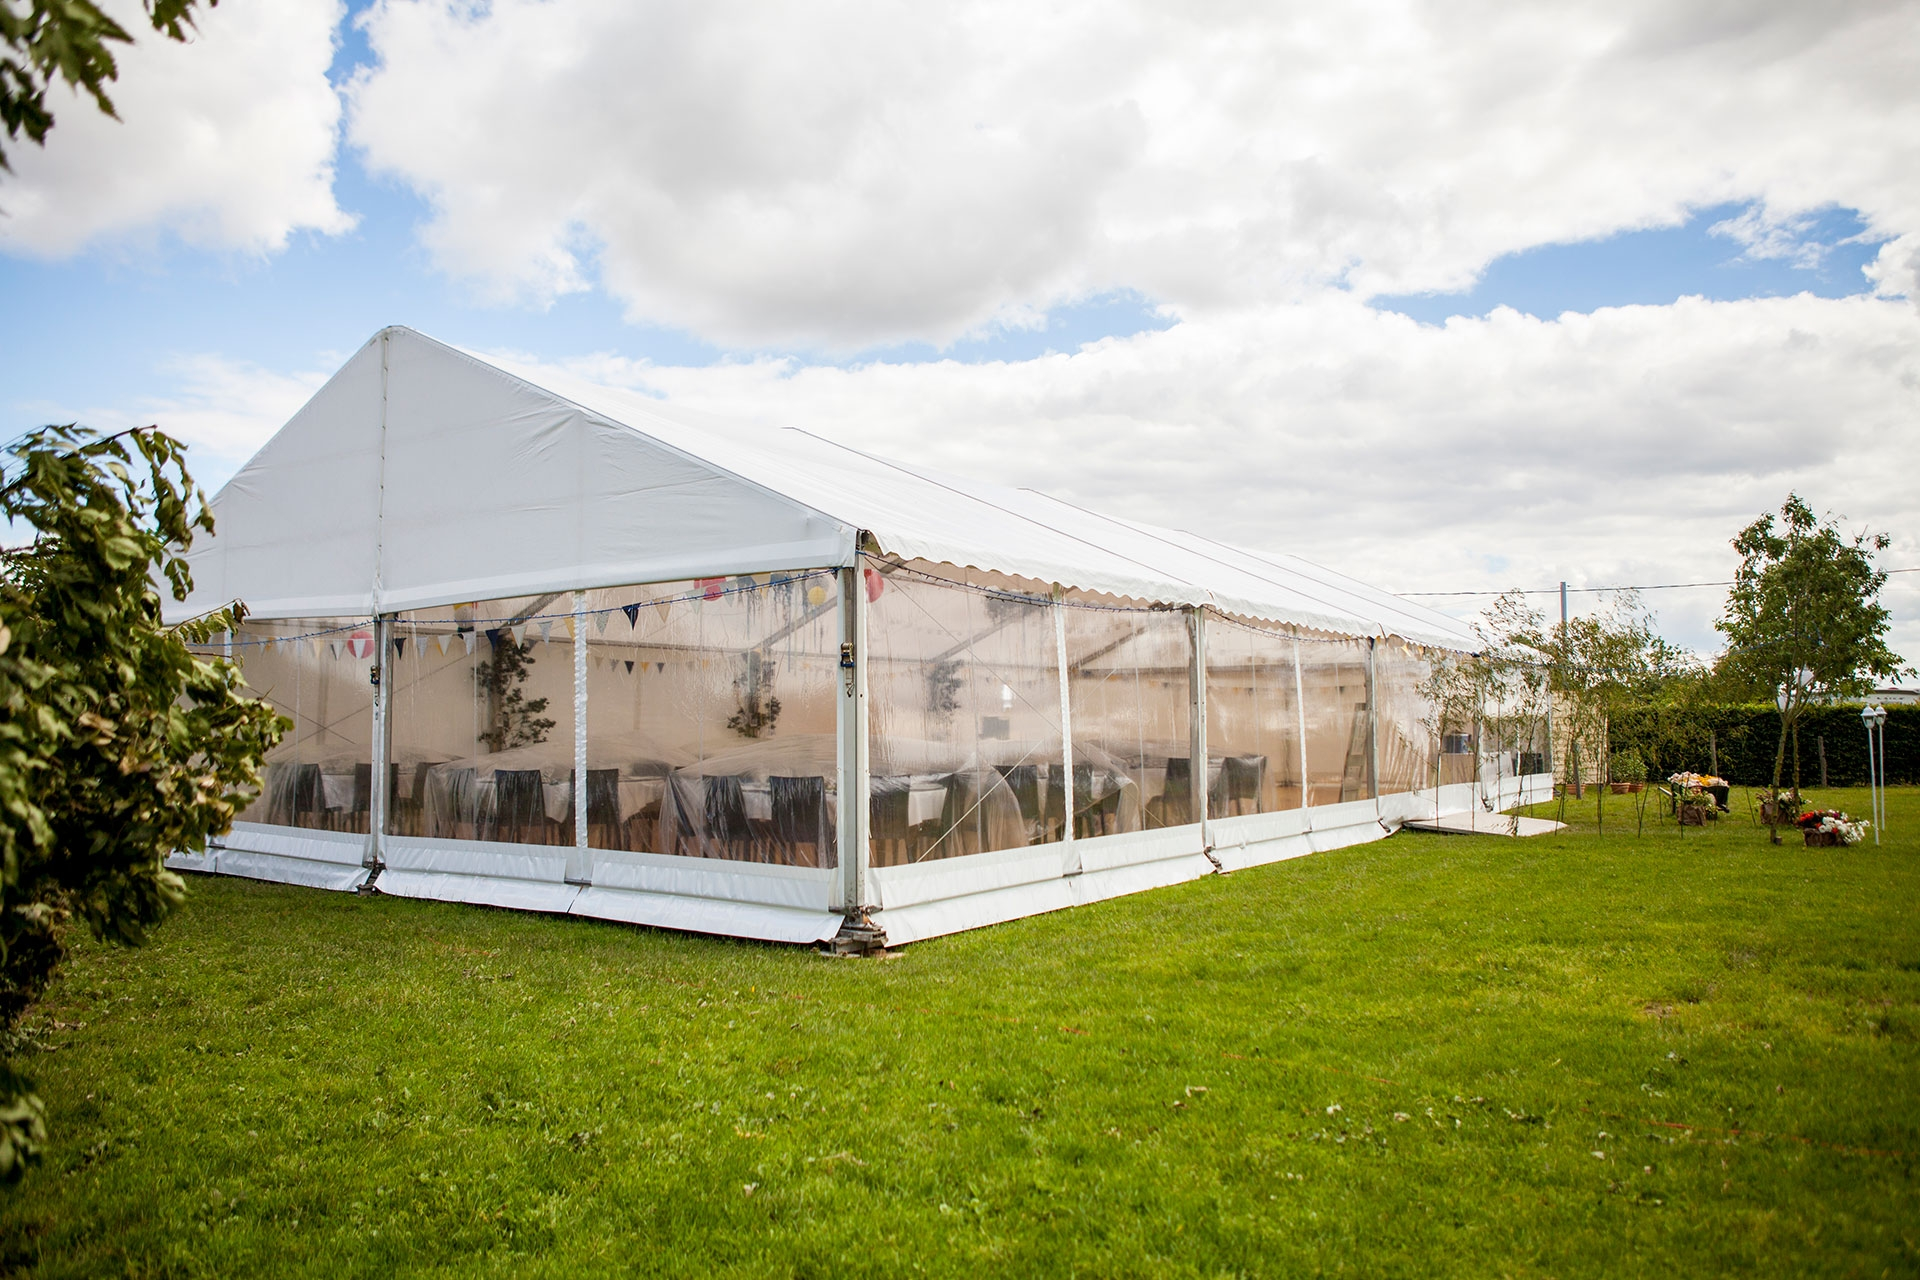 particuliers-evenements-mariages-oui-clementine&alexandre-60